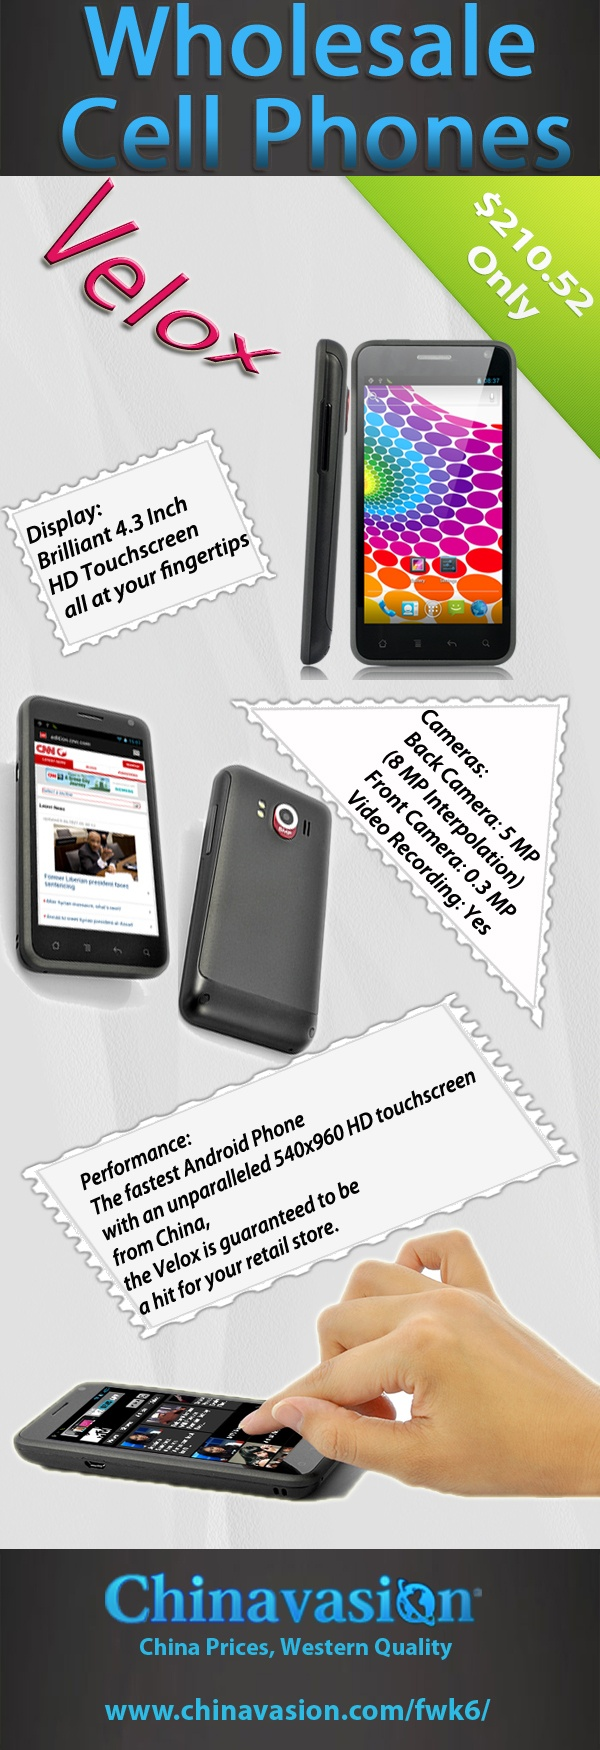 visit http://www.chinavasion.com/china/wholesale/Android_Phones/ to get the wholesale cell phones from chinavasion...